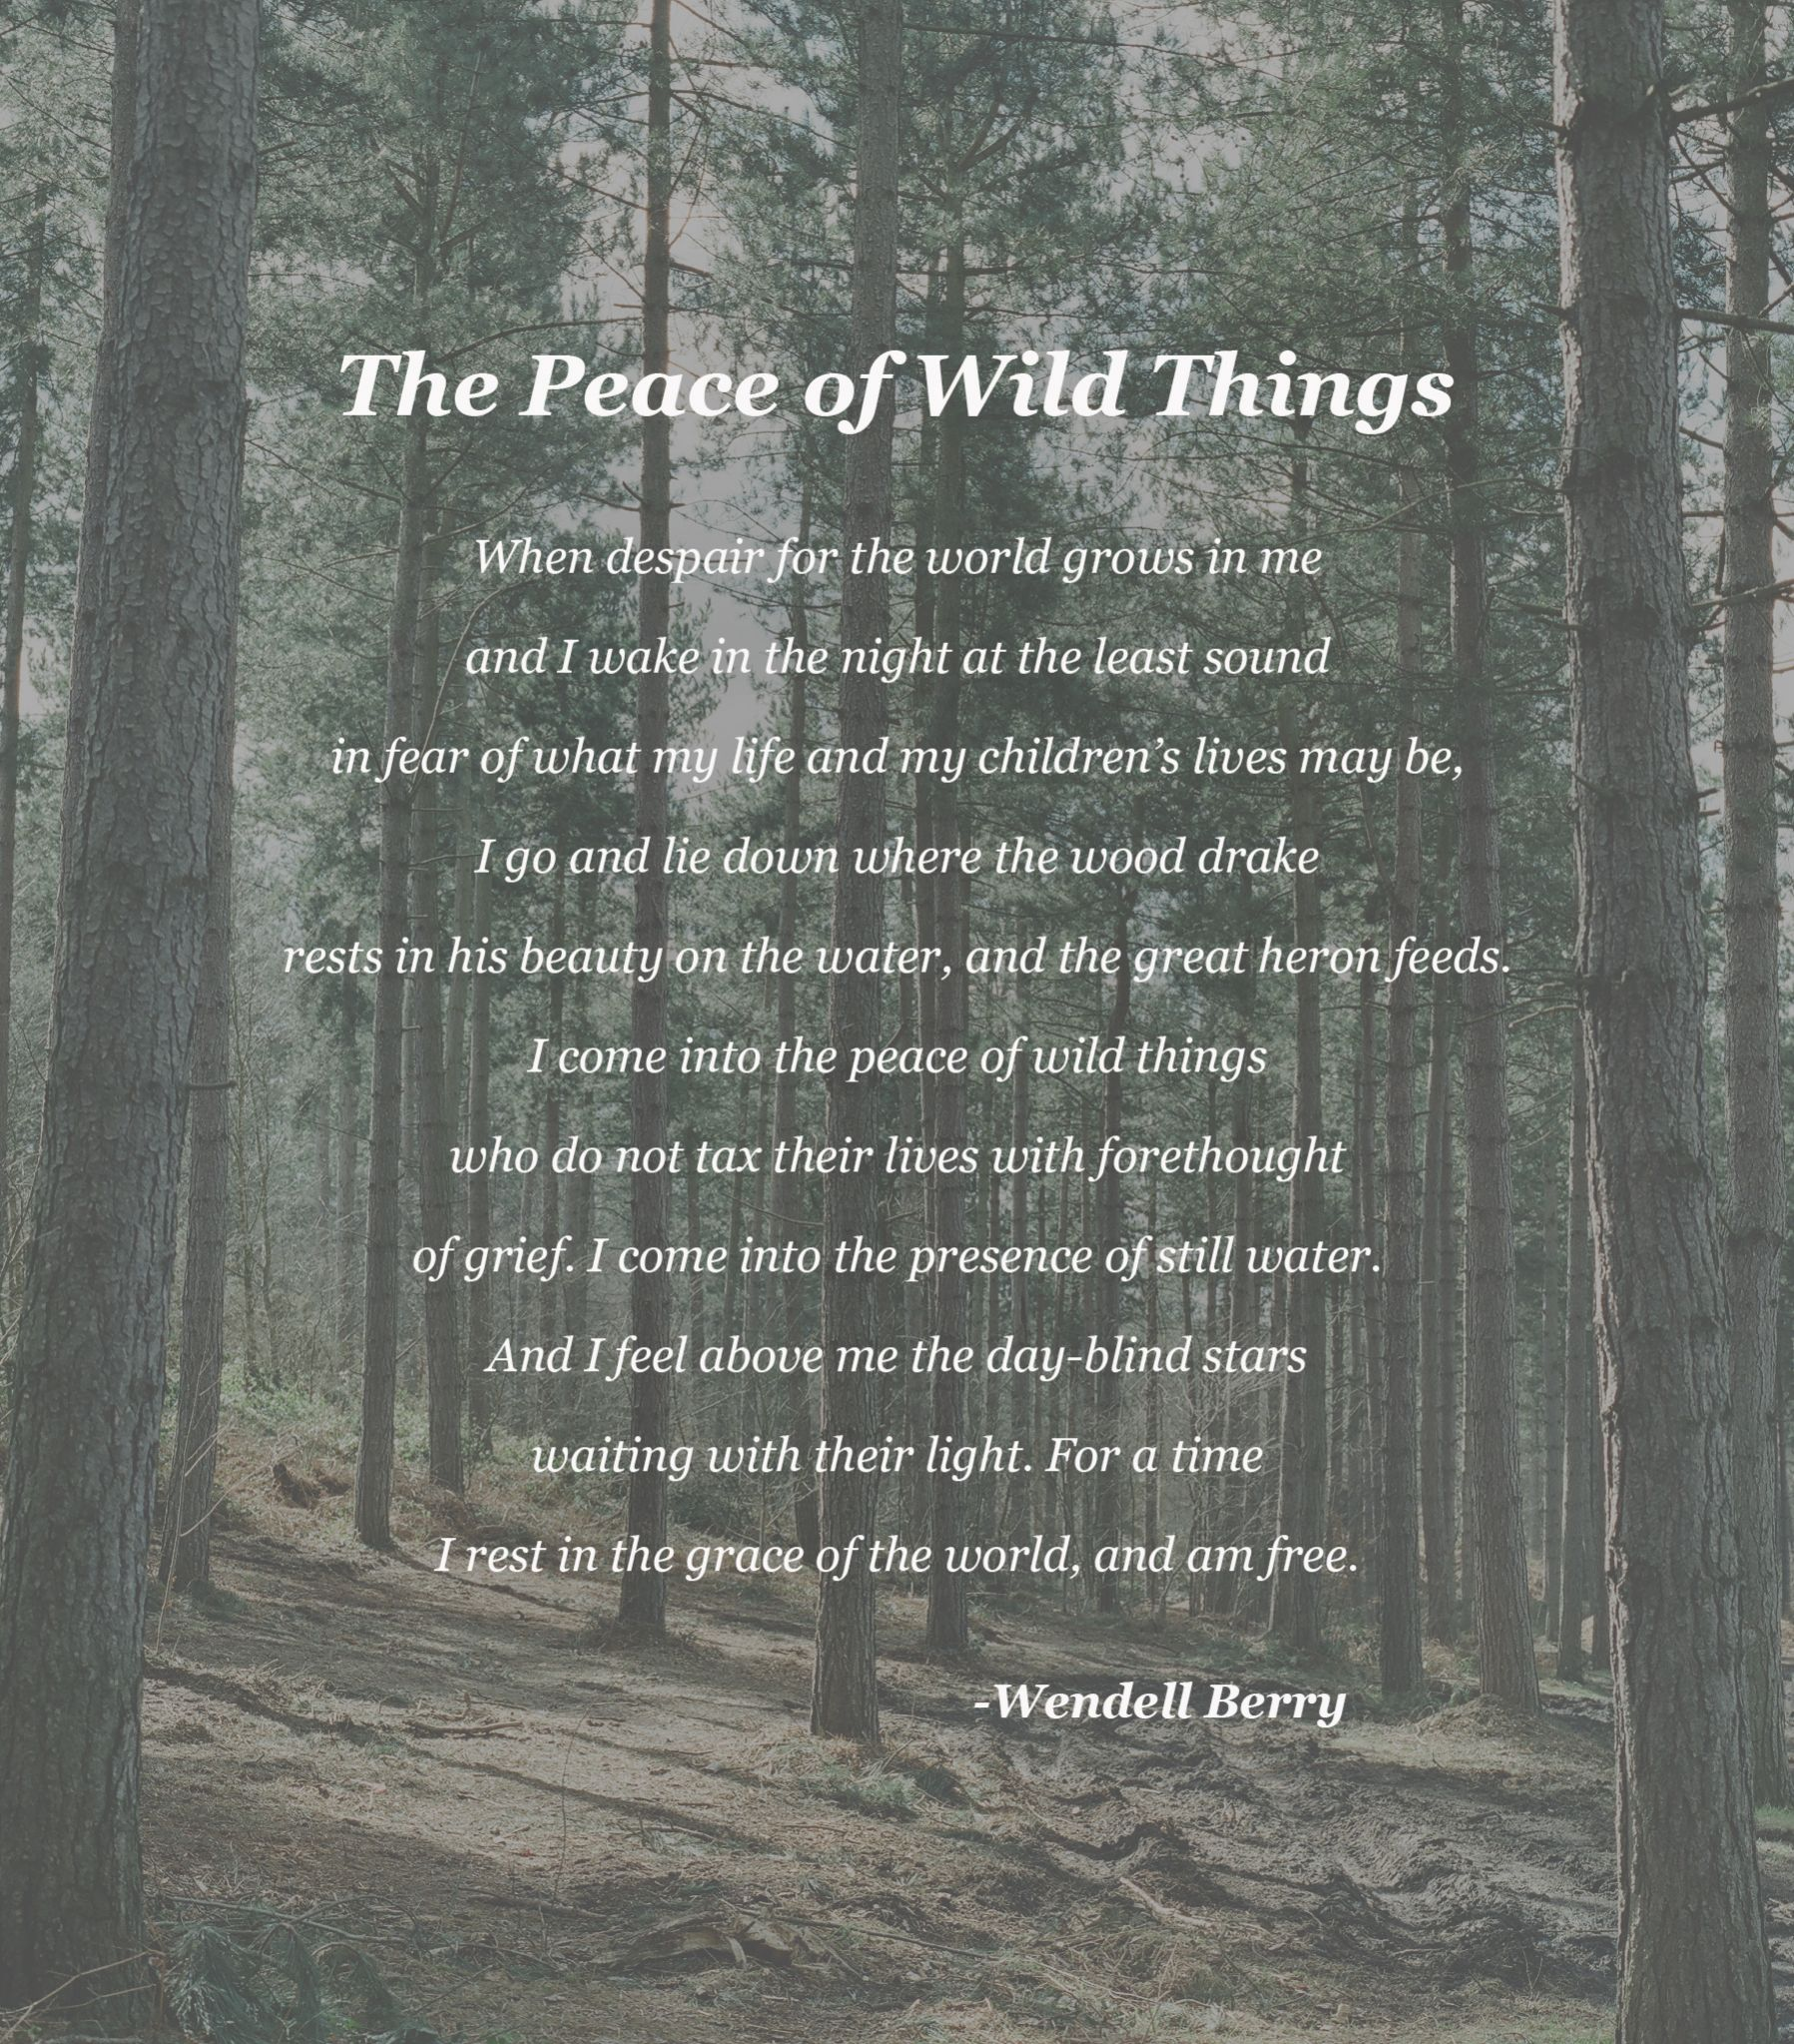 wendell berry poems Enjoy the best wendell berry quotes at brainyquote quotations by wendell berry, american poet, born august 5, 1934 share with your friends.